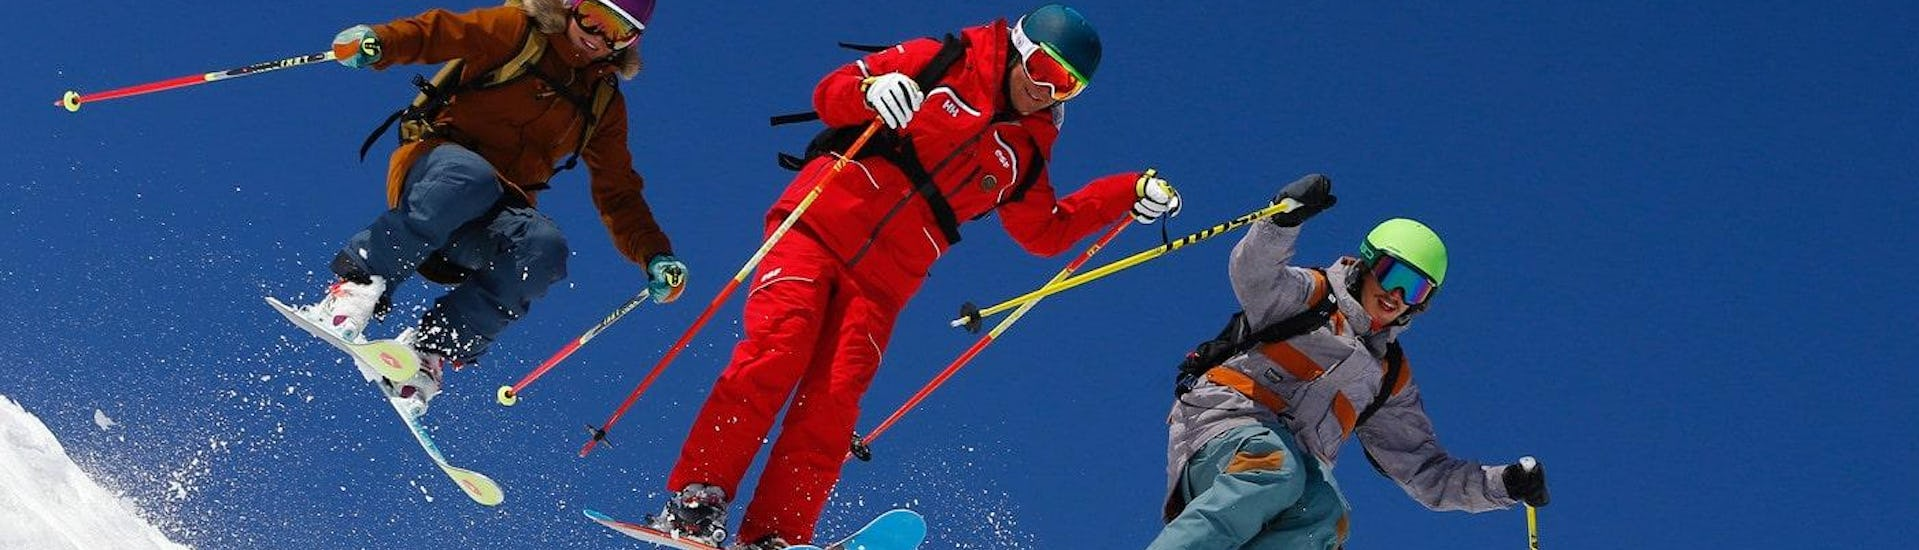 Skiers are skiing with confidence with their ski instructor from the ski school ESF Alpe d'Huez during their Ski Lessons for Adults - All Levels.